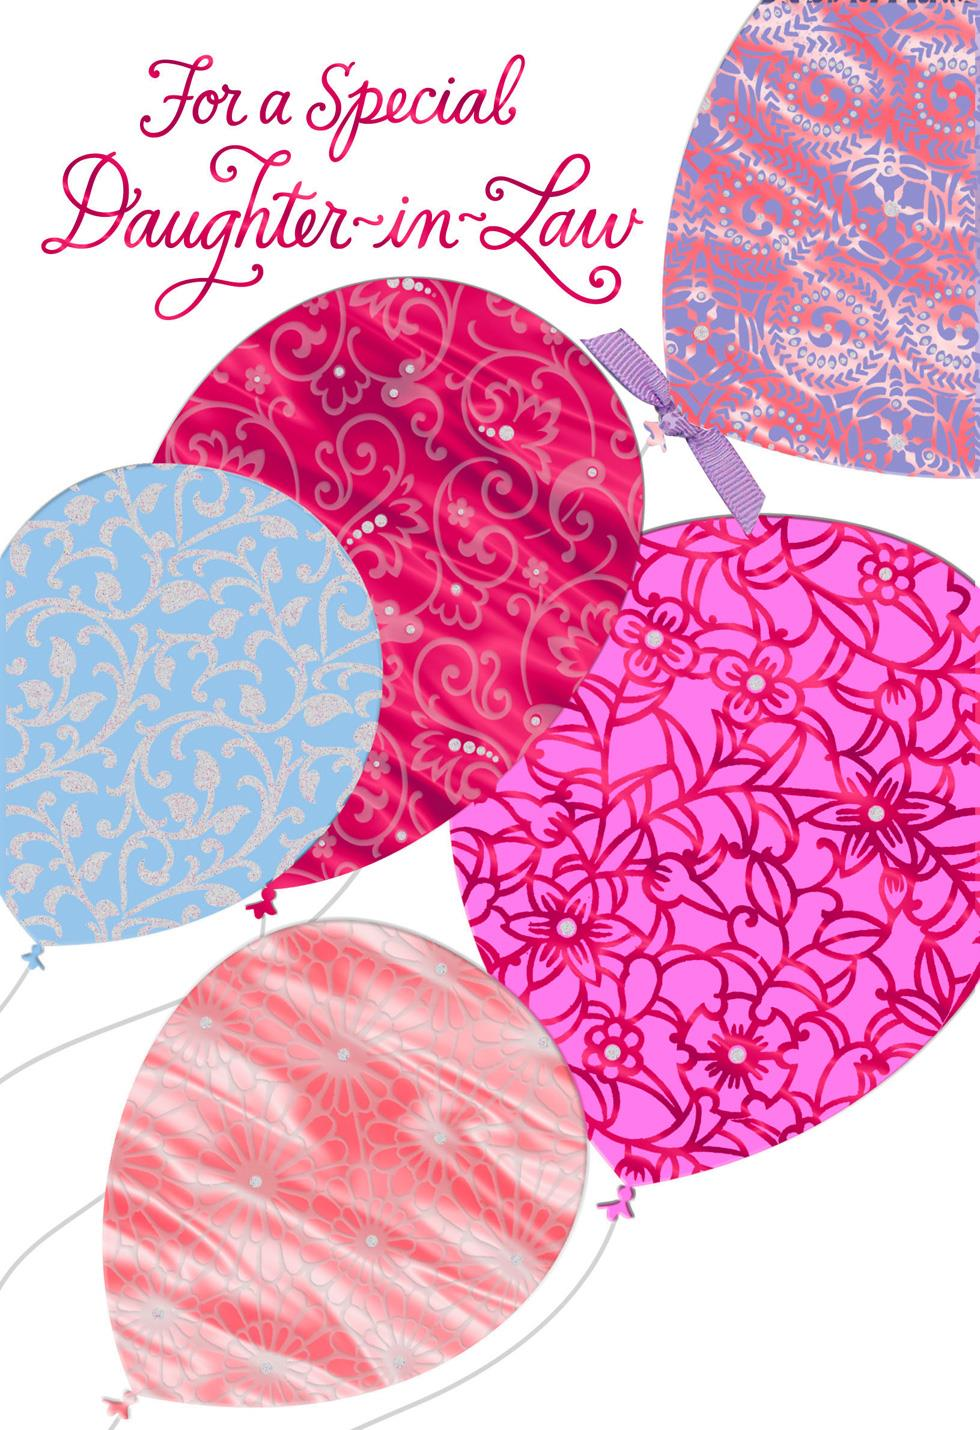 Happy Youre Family Birthday Card For Daughter In Law